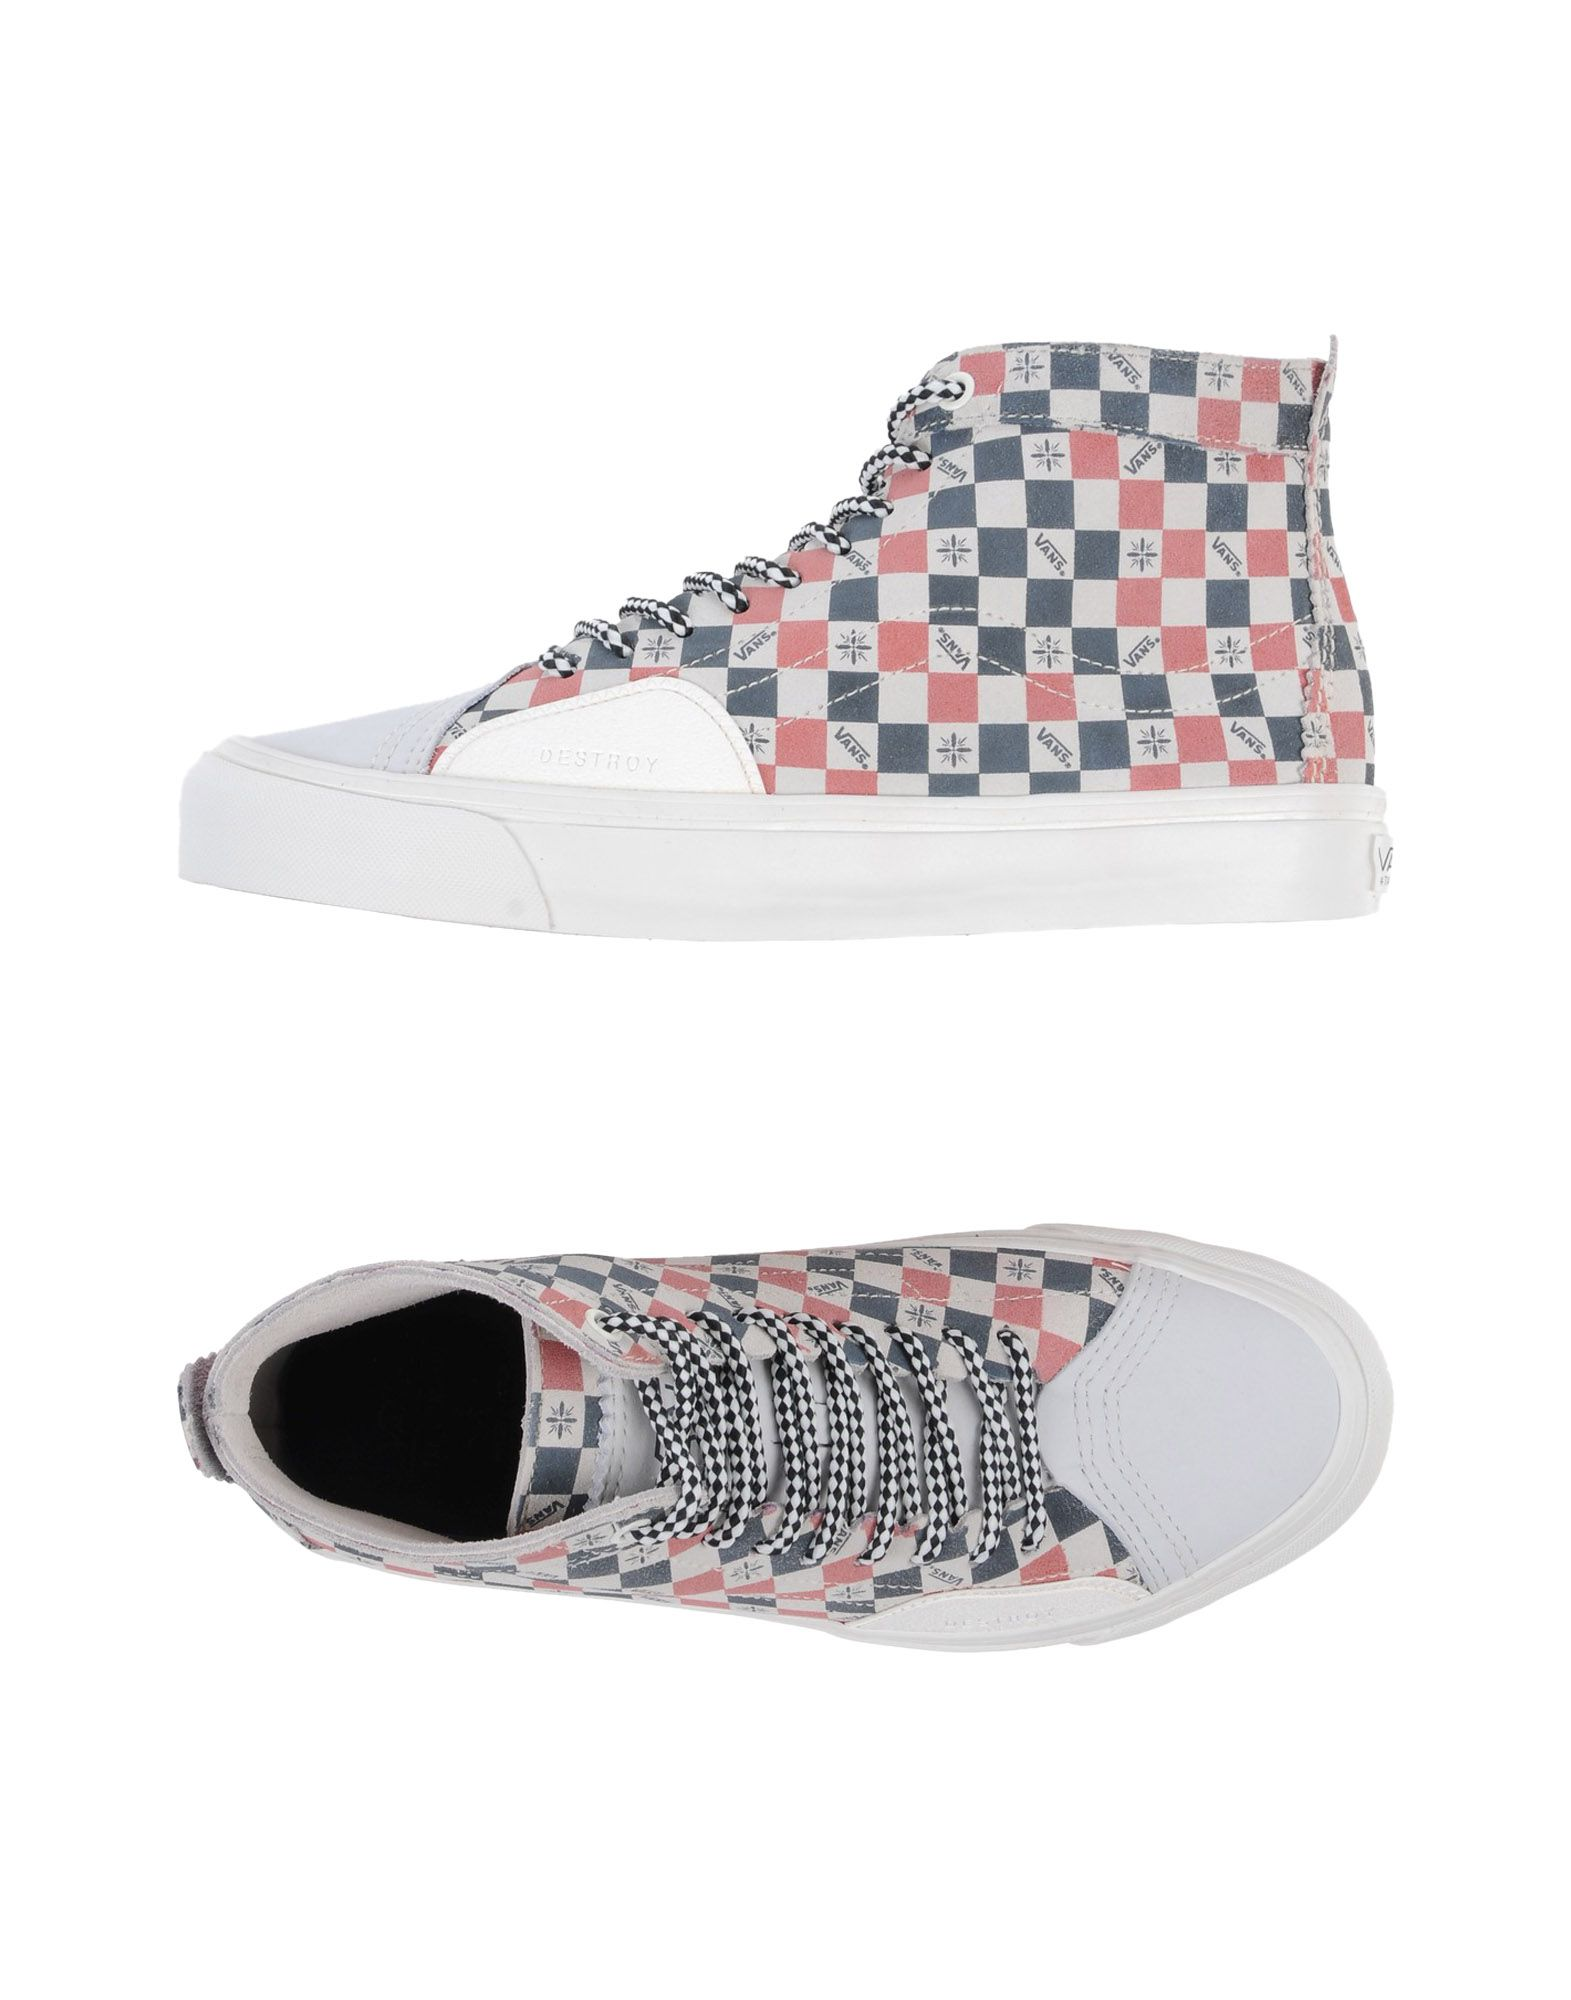 Sneakers Taka Hayashi For Vault By Vans Uomo - 11387201VW